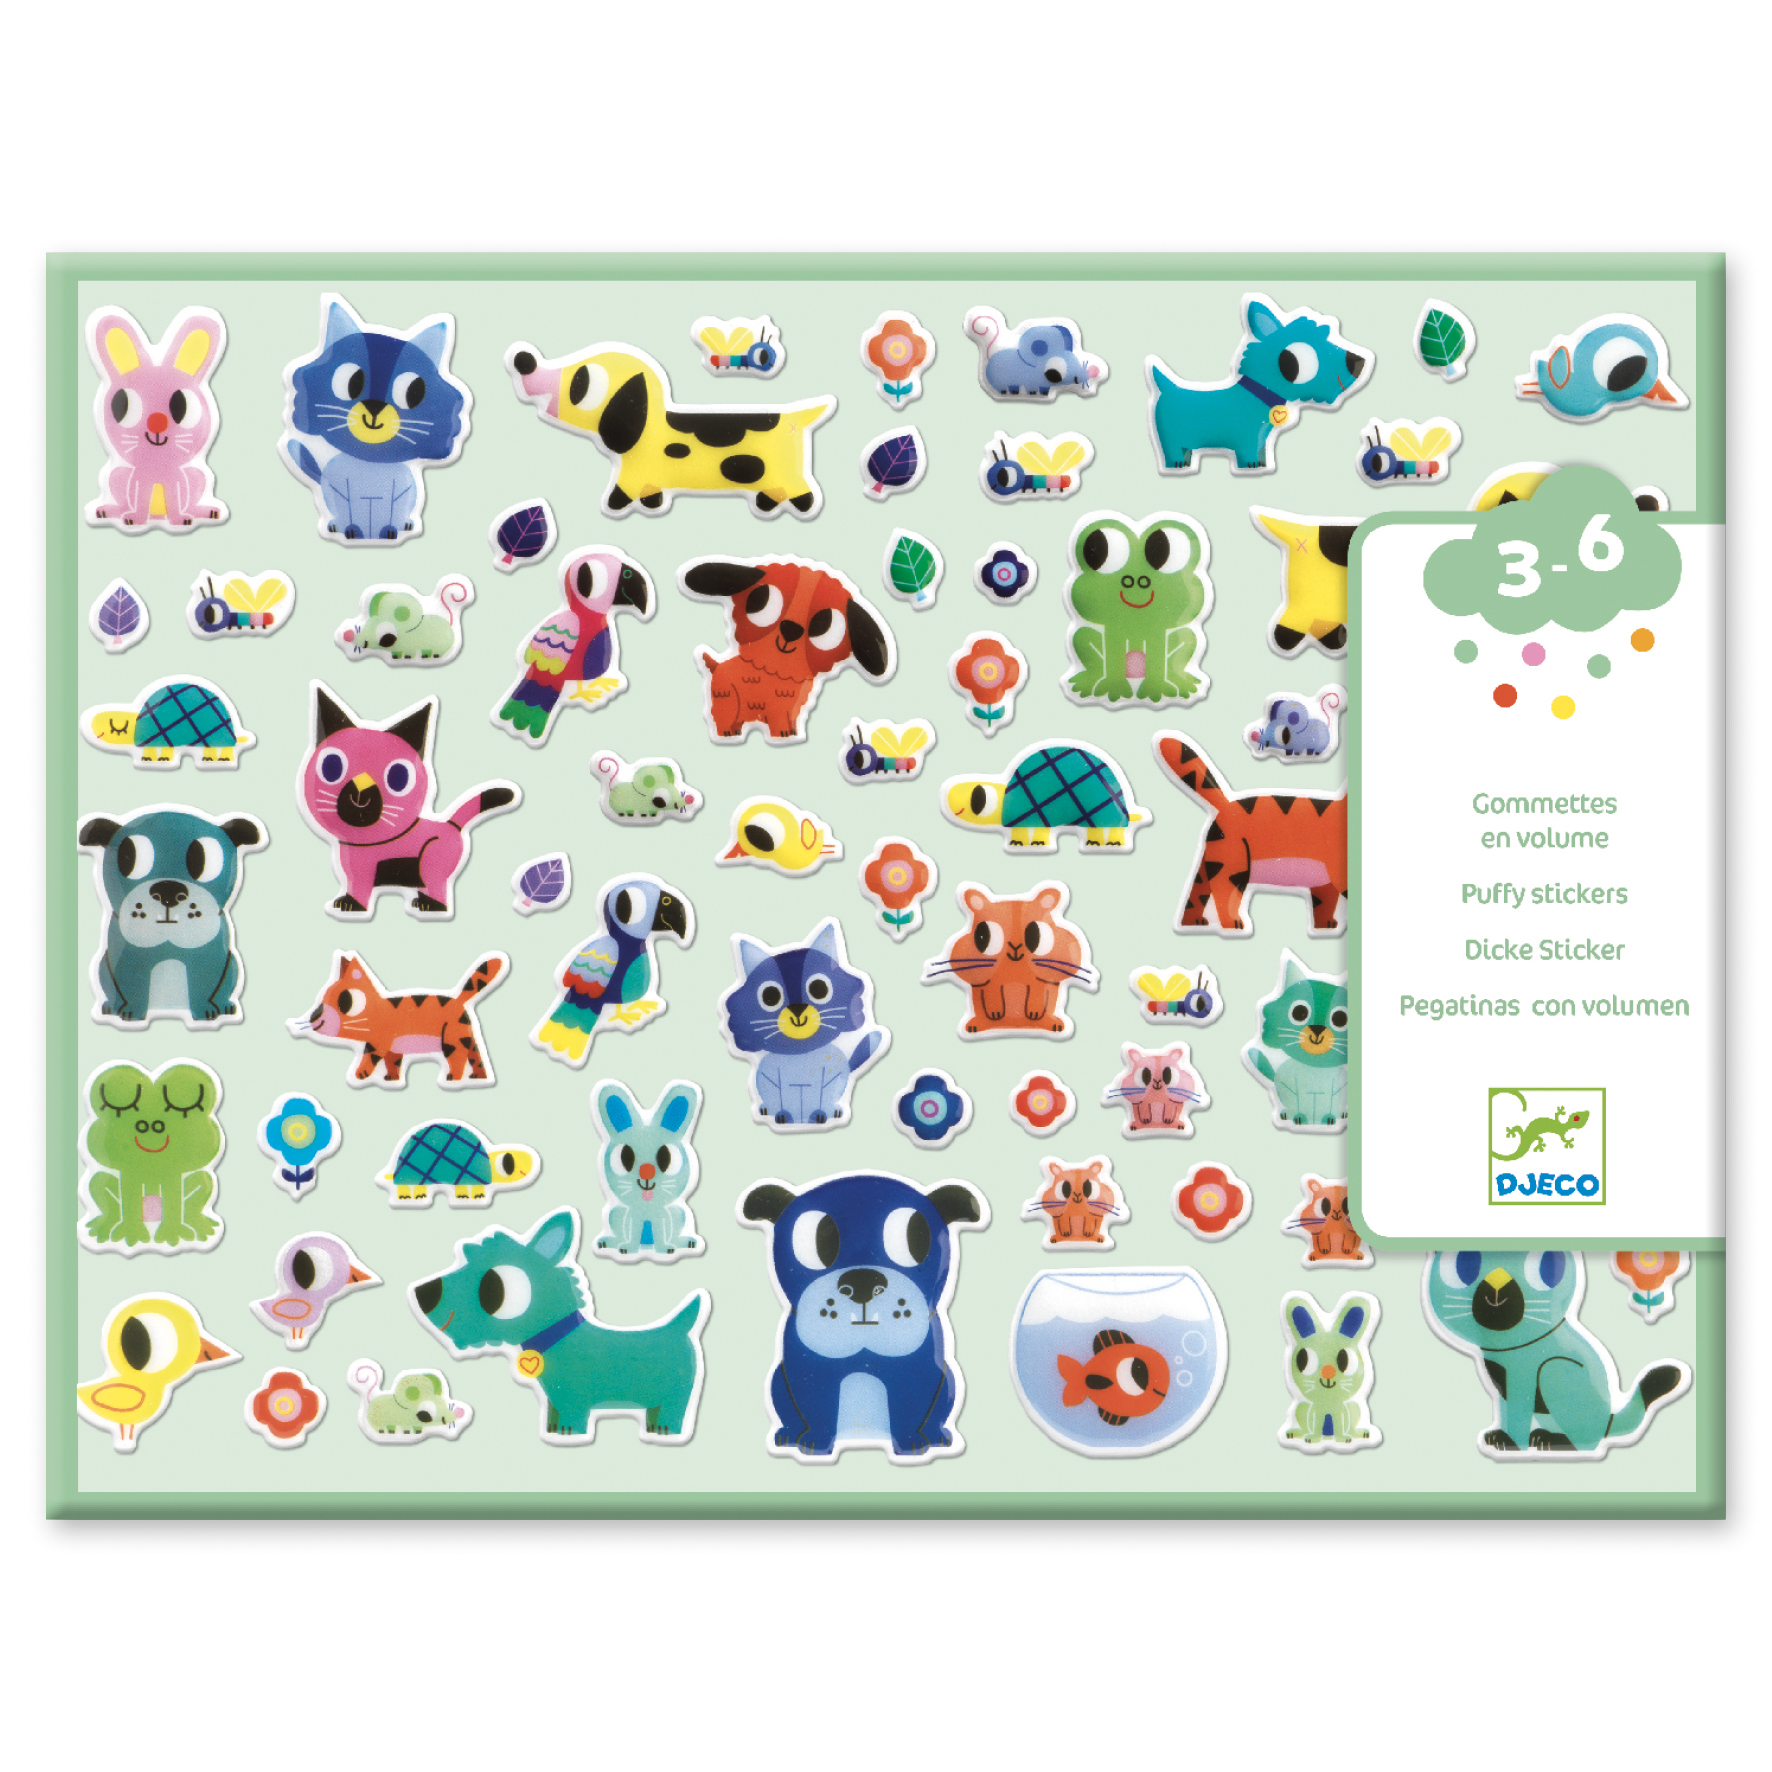 My Pet Puffy Stickers from Djeco